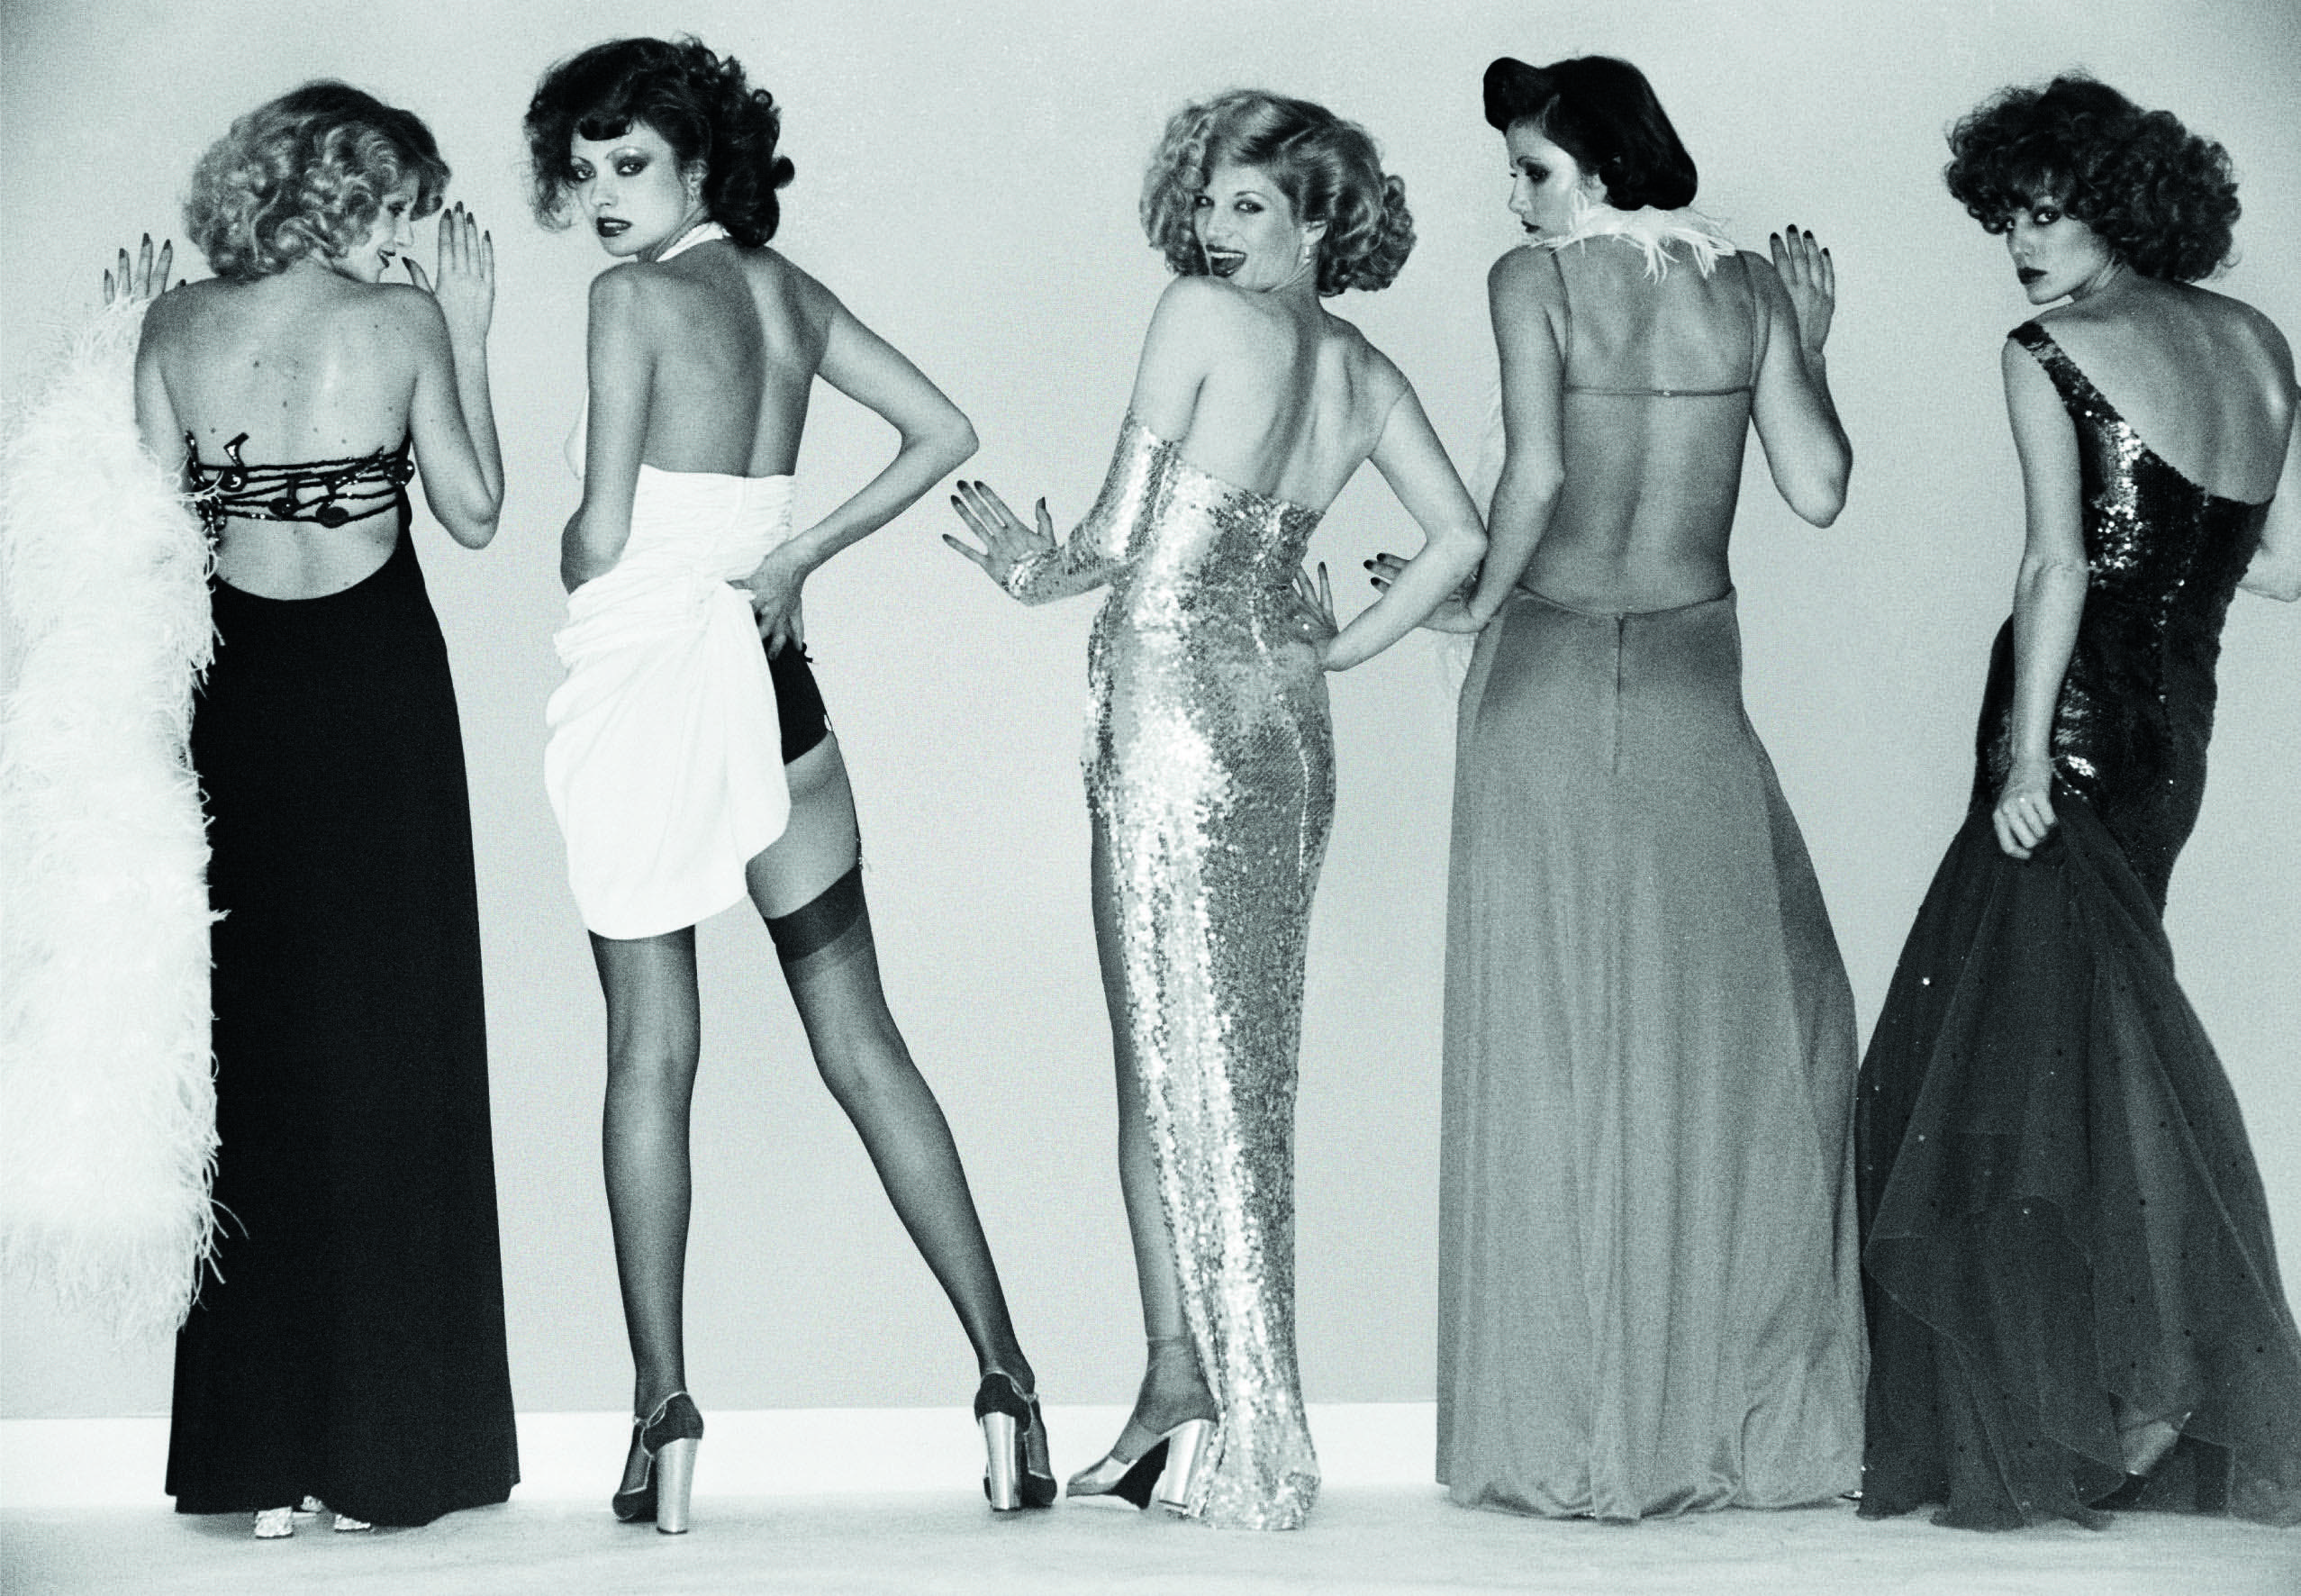 An archive photograph of models in looks by Azzaro.